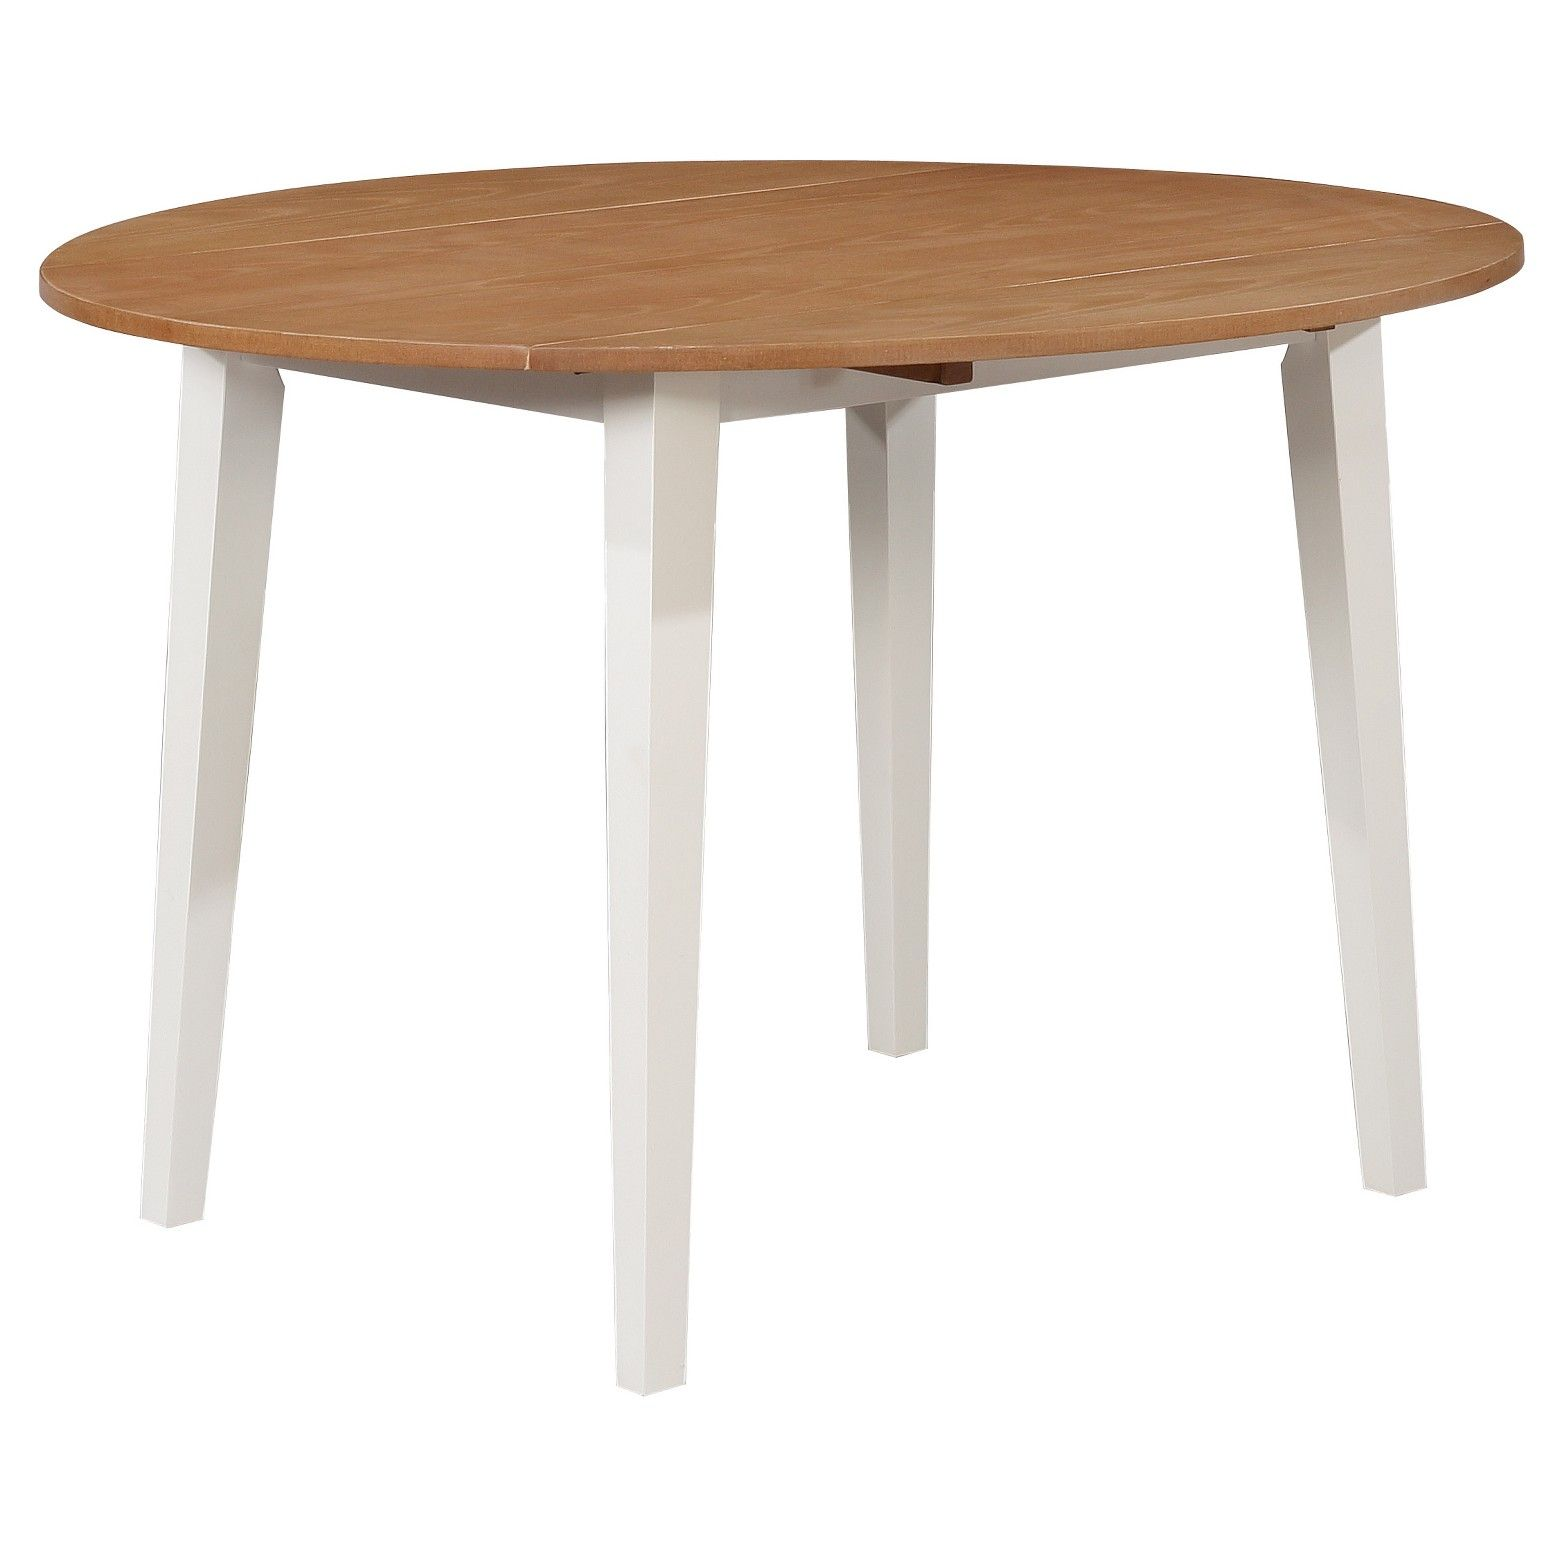 The Sweet Carey 44 Round Drop Leaf Table Threshold Fits A Small